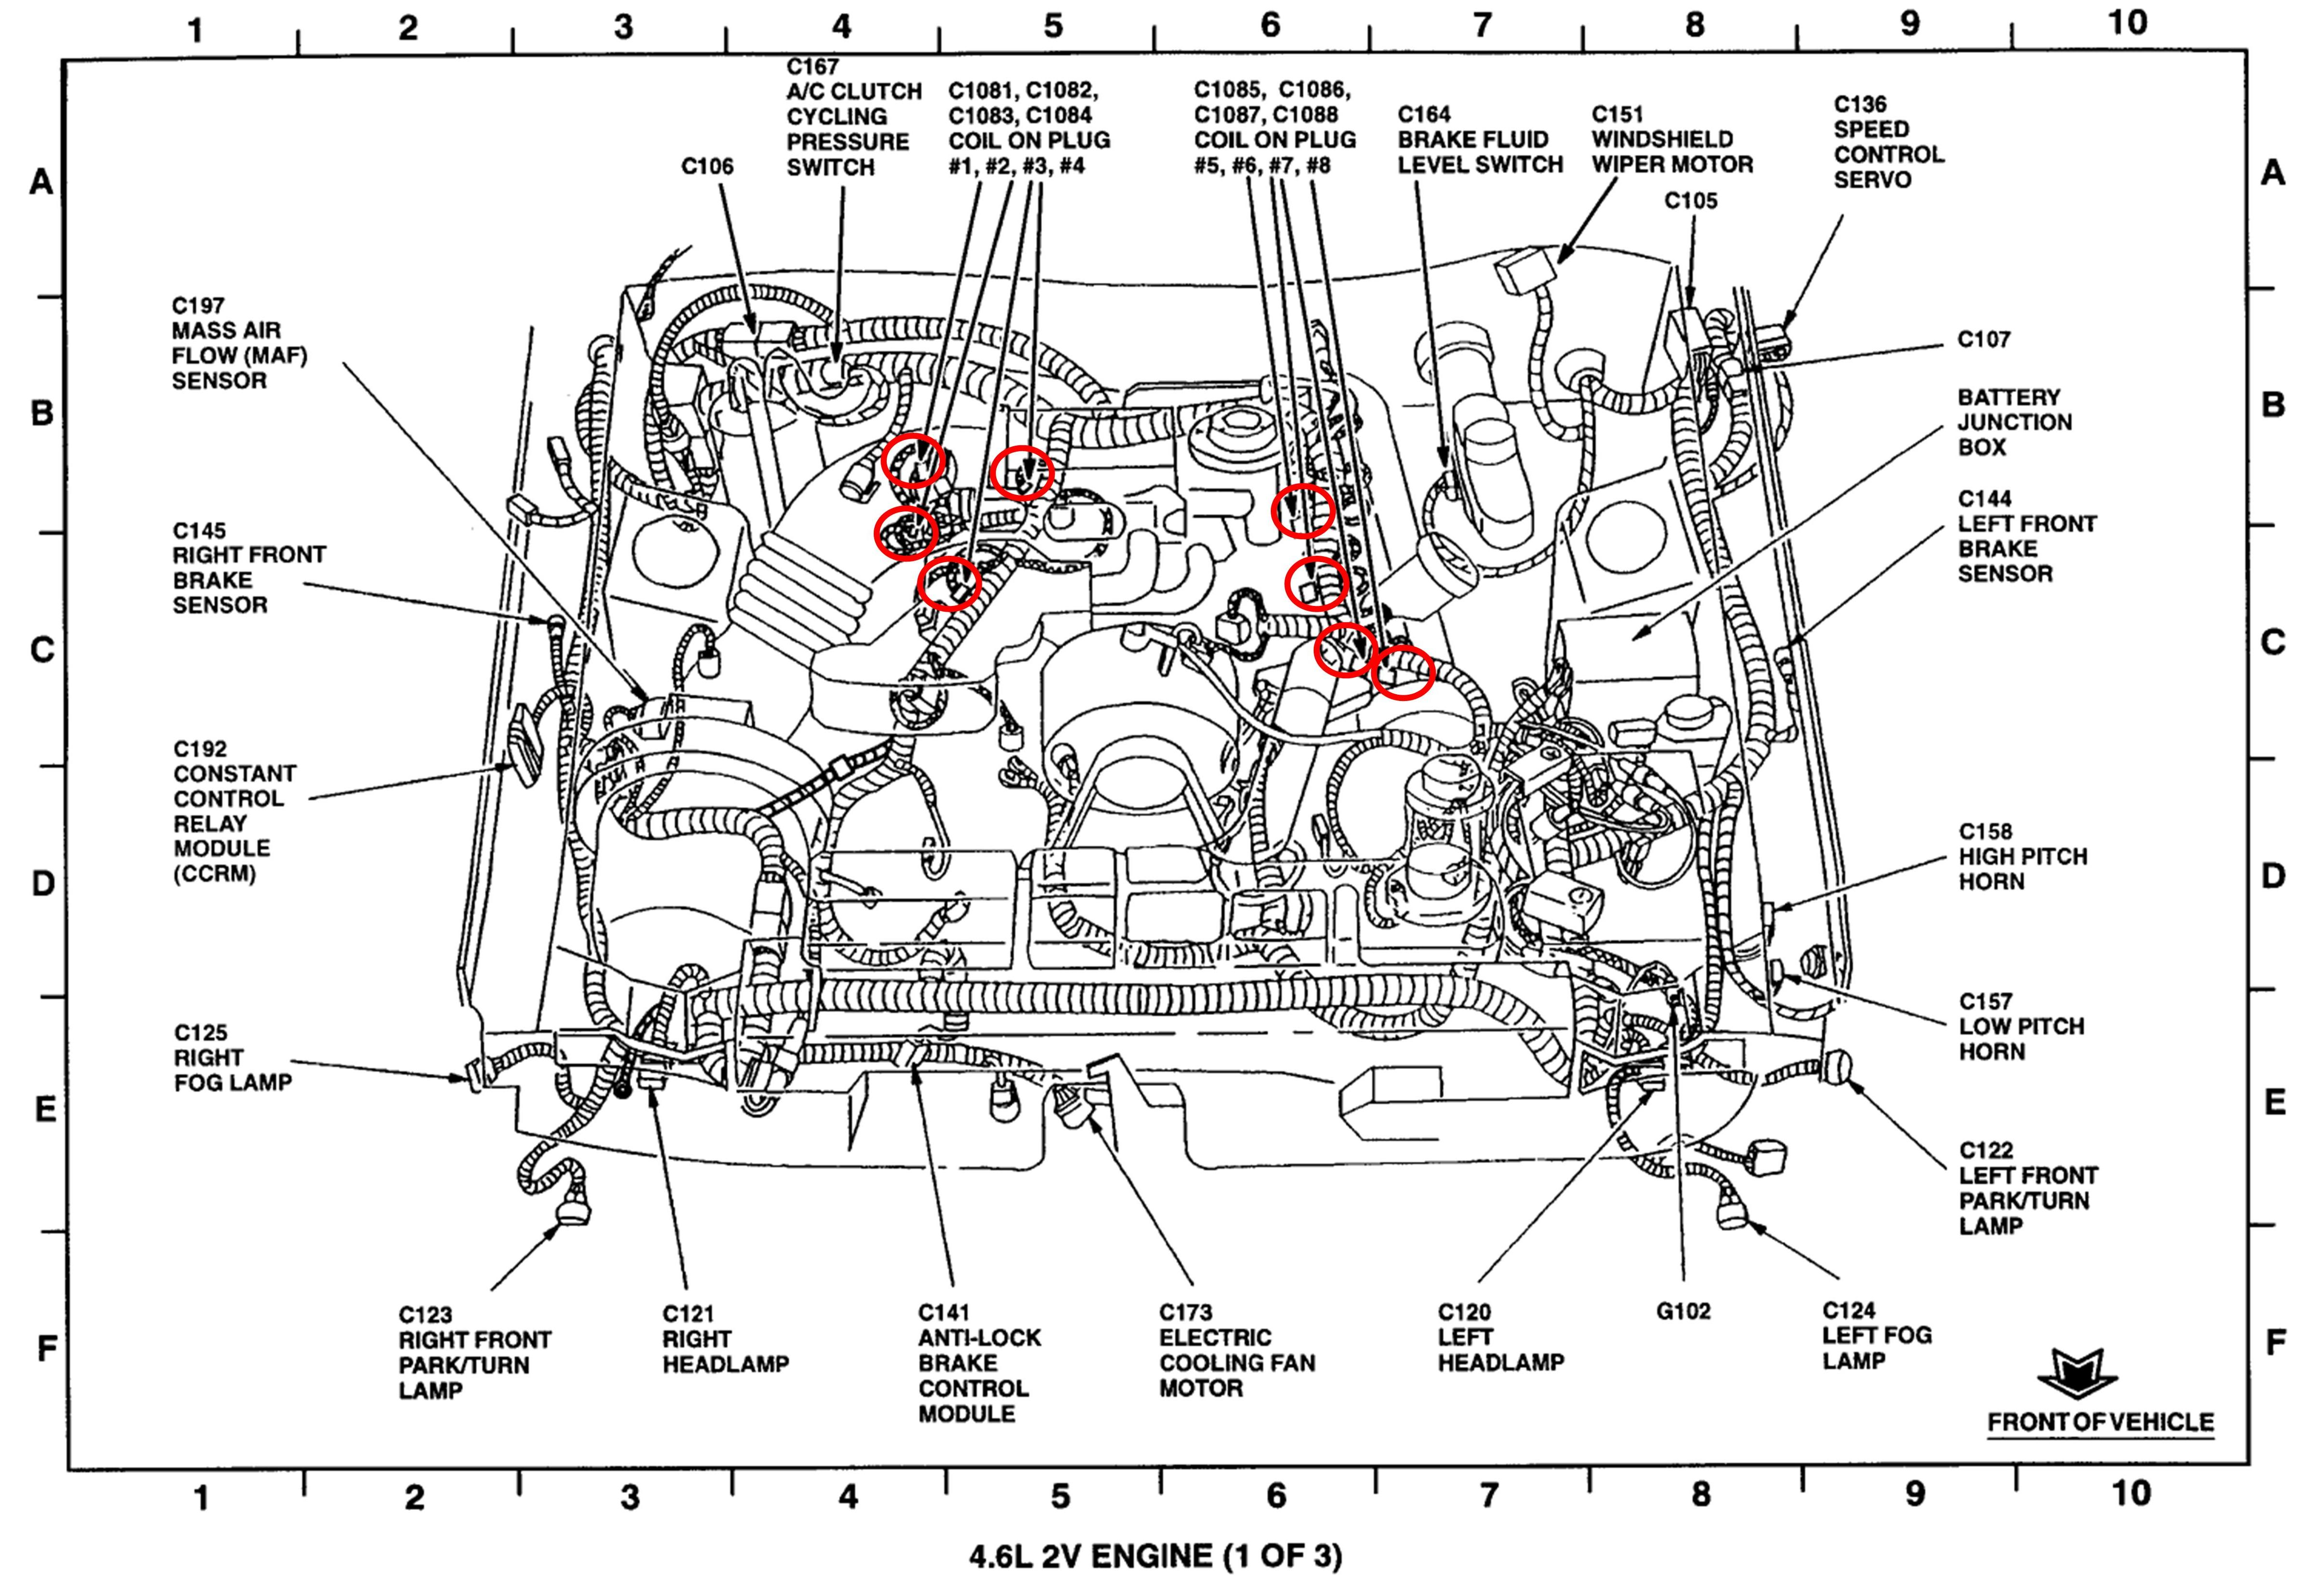 1996 Mustang Gt Wiring Harness : 30 Wiring Diagram Images